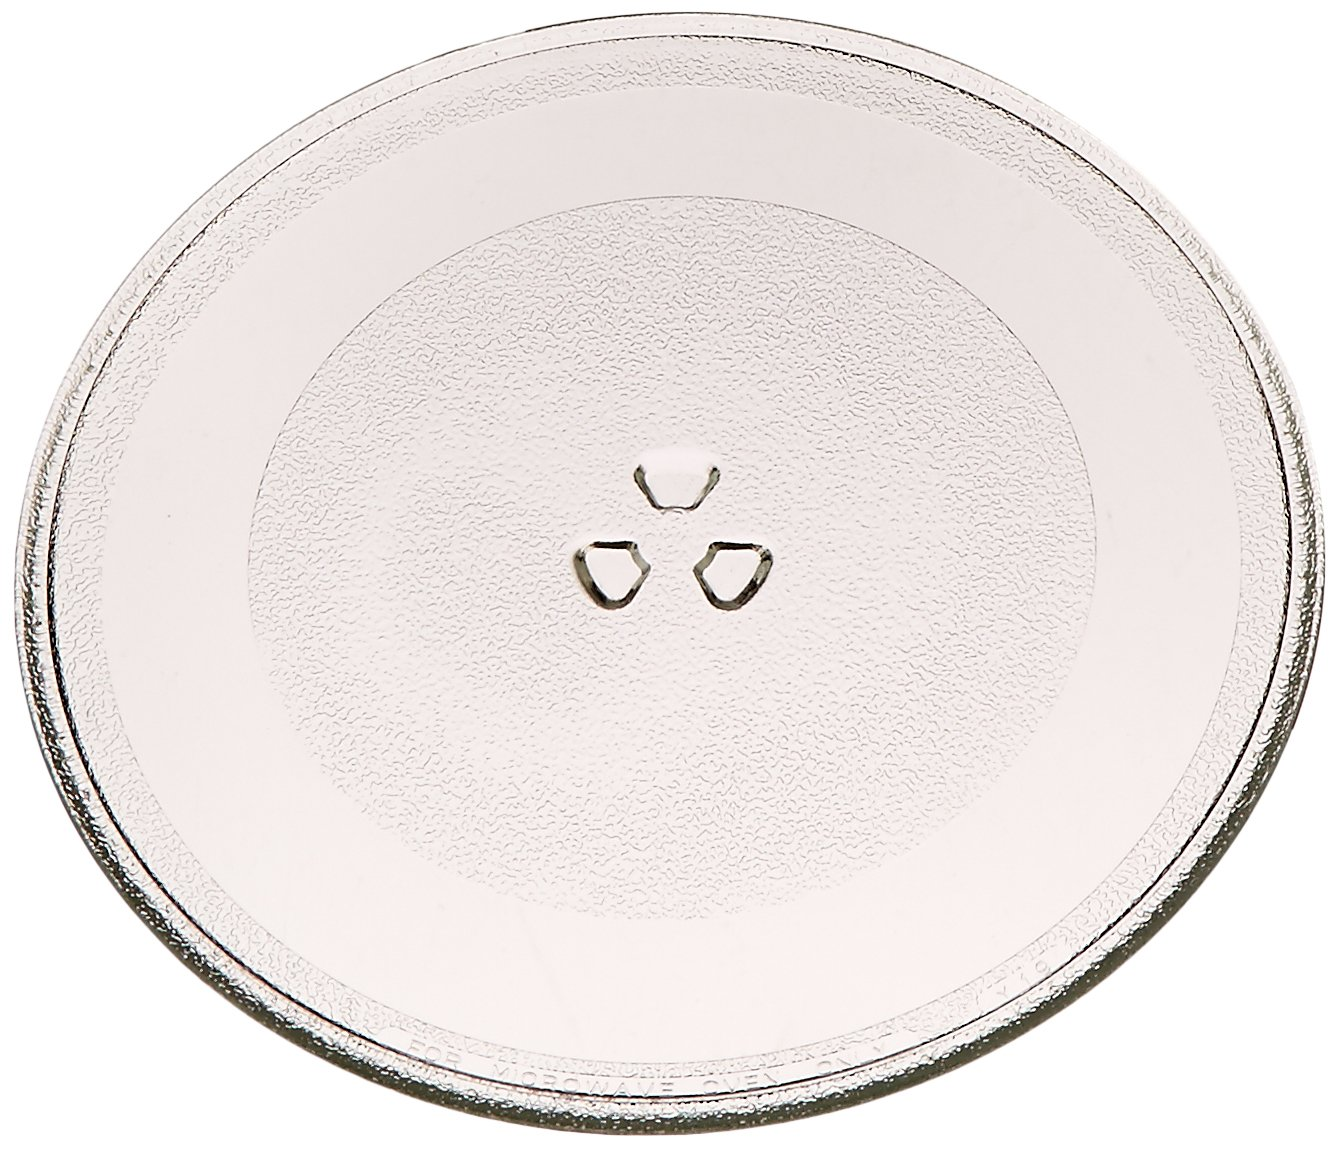 Kenmore Microwave Glass Turntable Tray / Plate 12 3/4'' 1B71961F